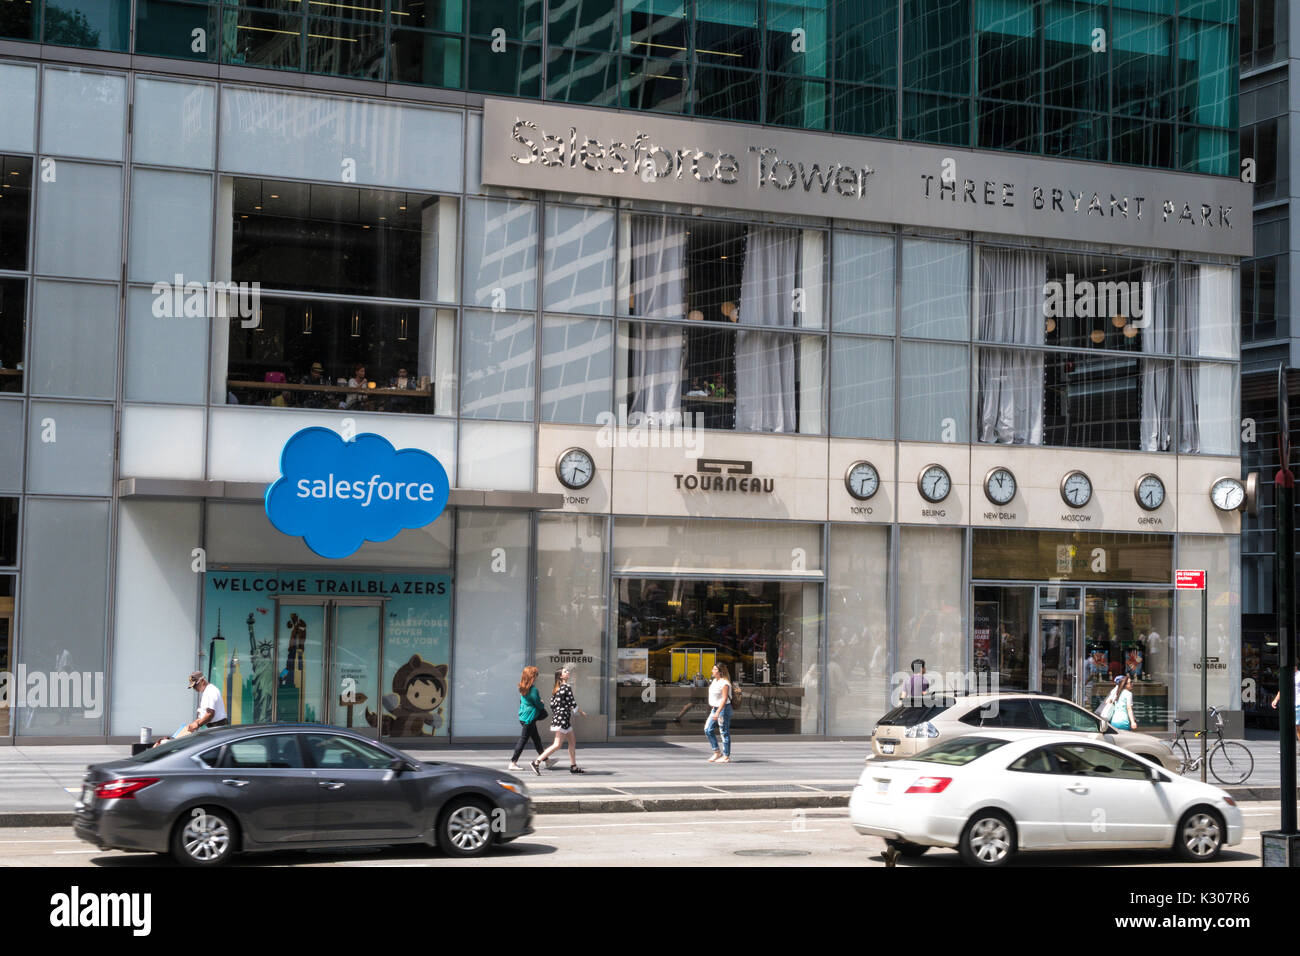 Salesforce Tower, 3 Bryant Park, on Sixth Avenue, NYC, USA - Stock Image